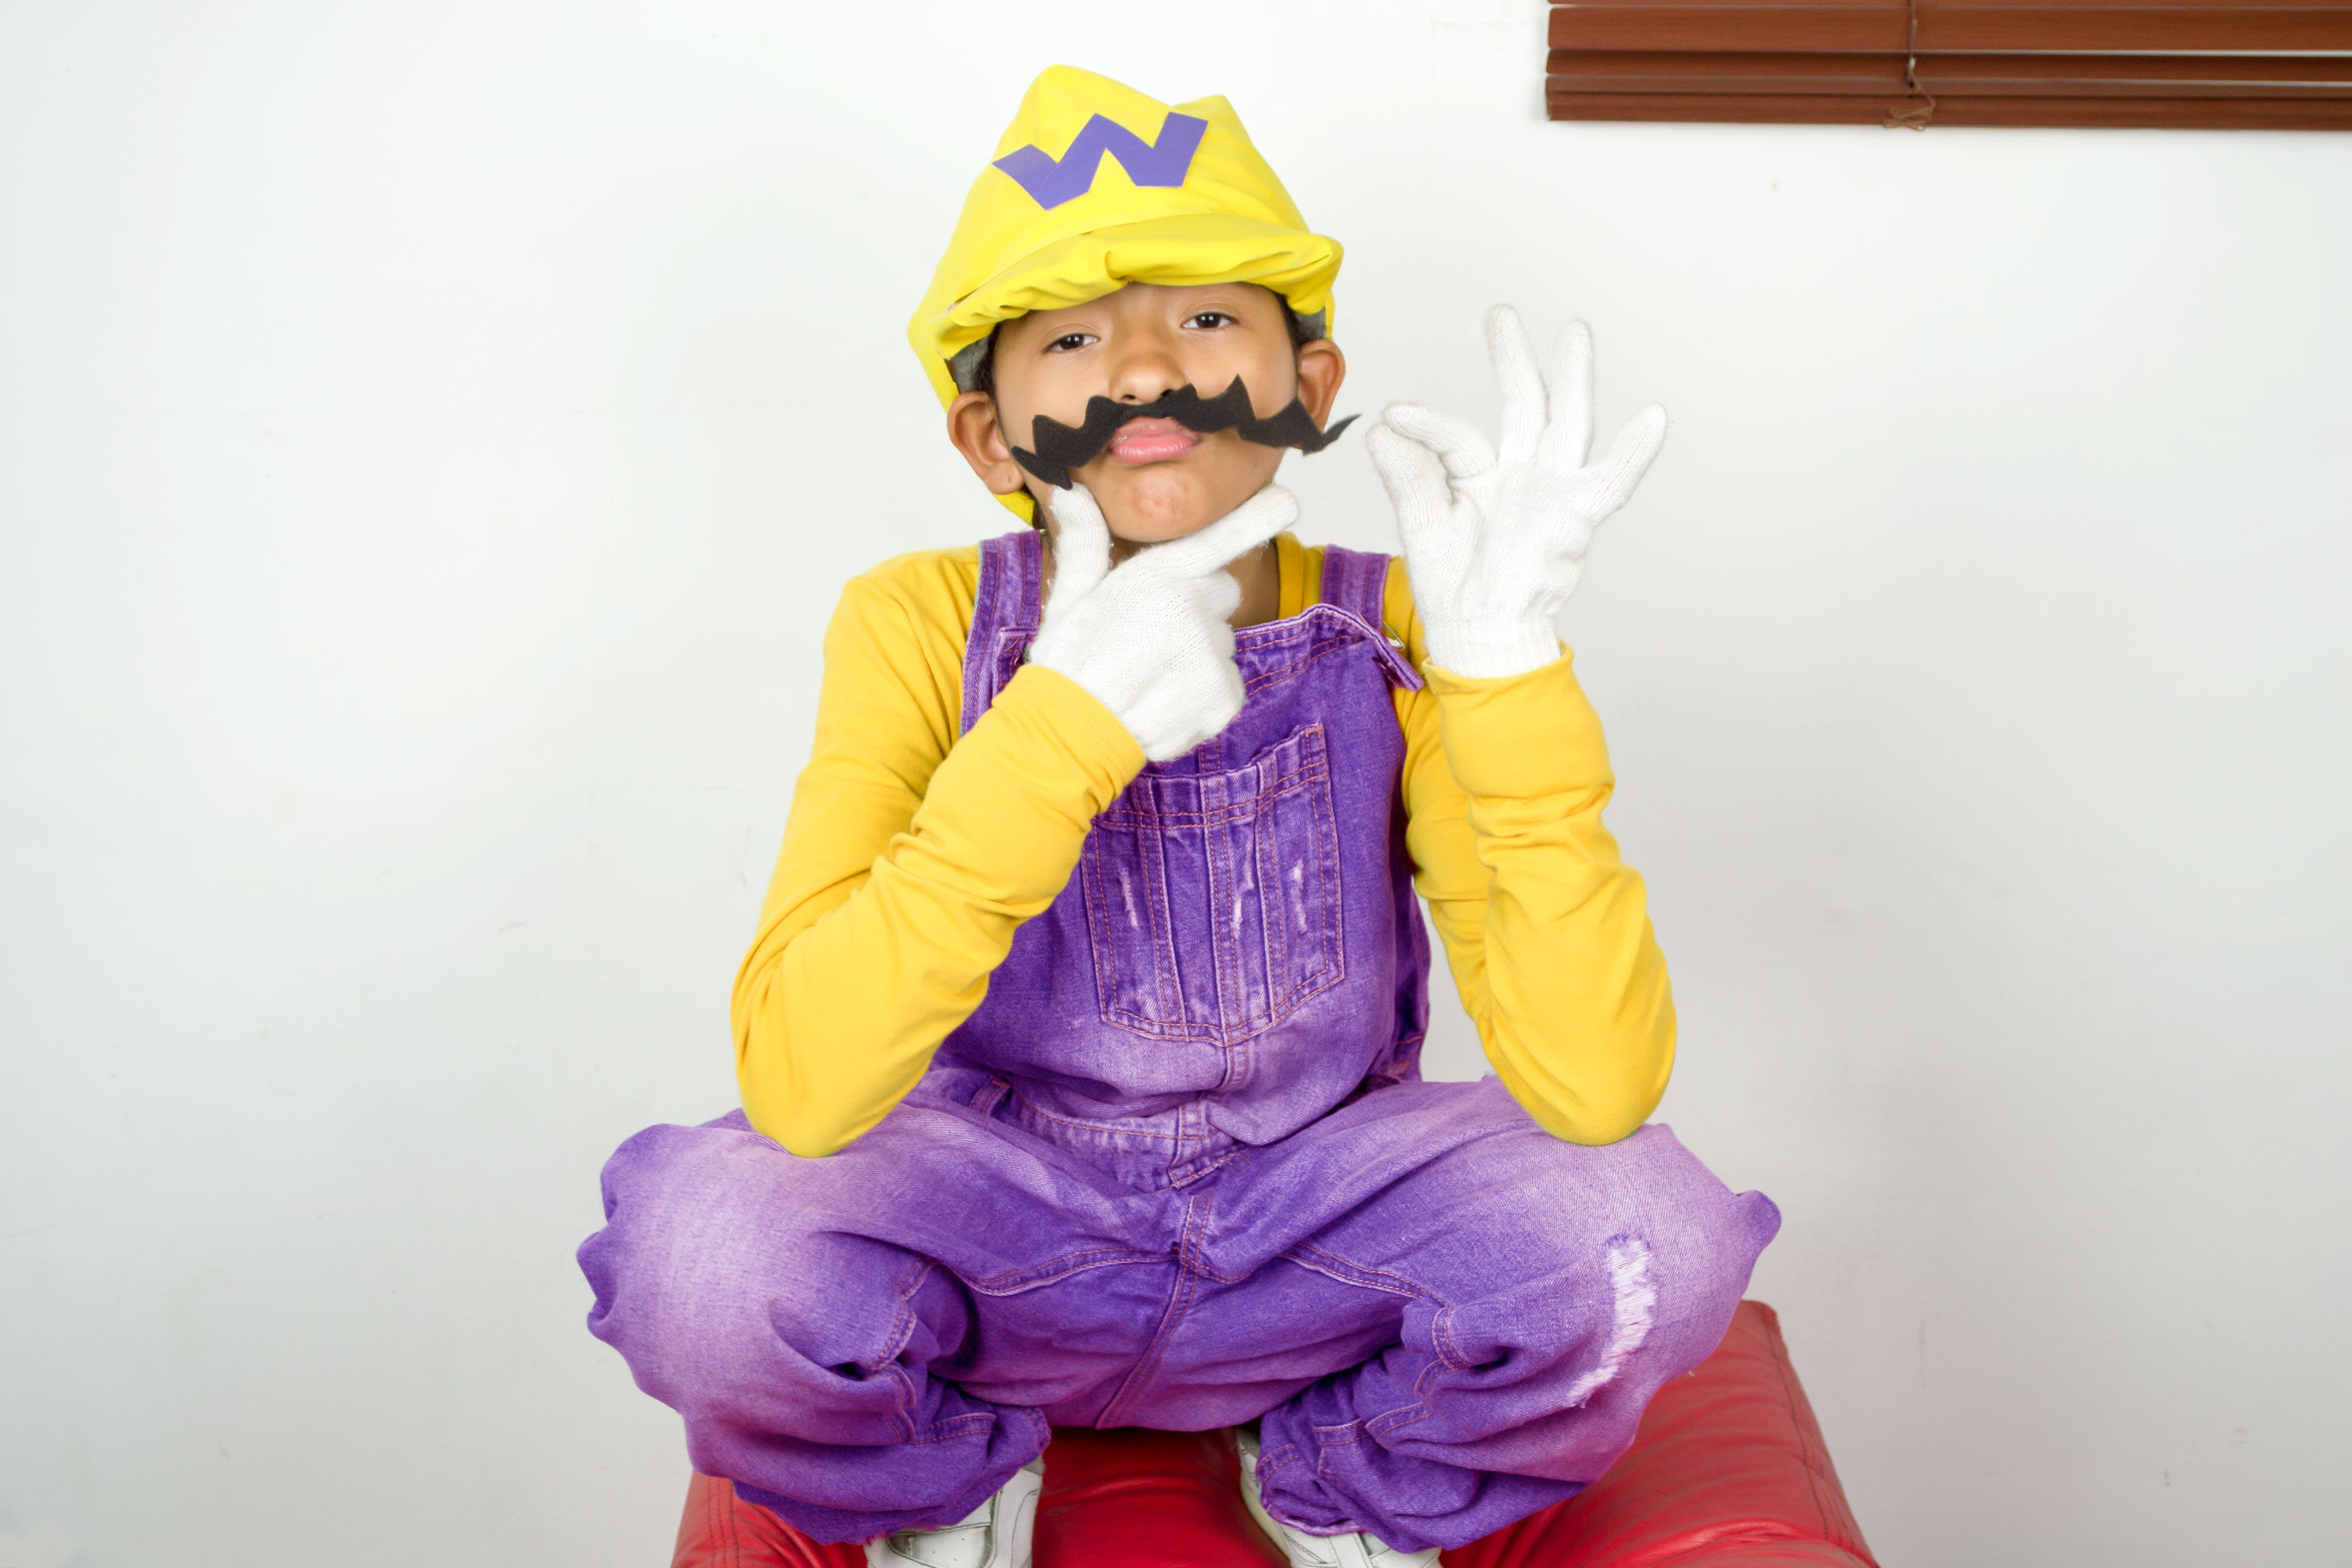 Best ideas about Wario Costume DIY . Save or Pin How to Make a Wario Costume with Now.